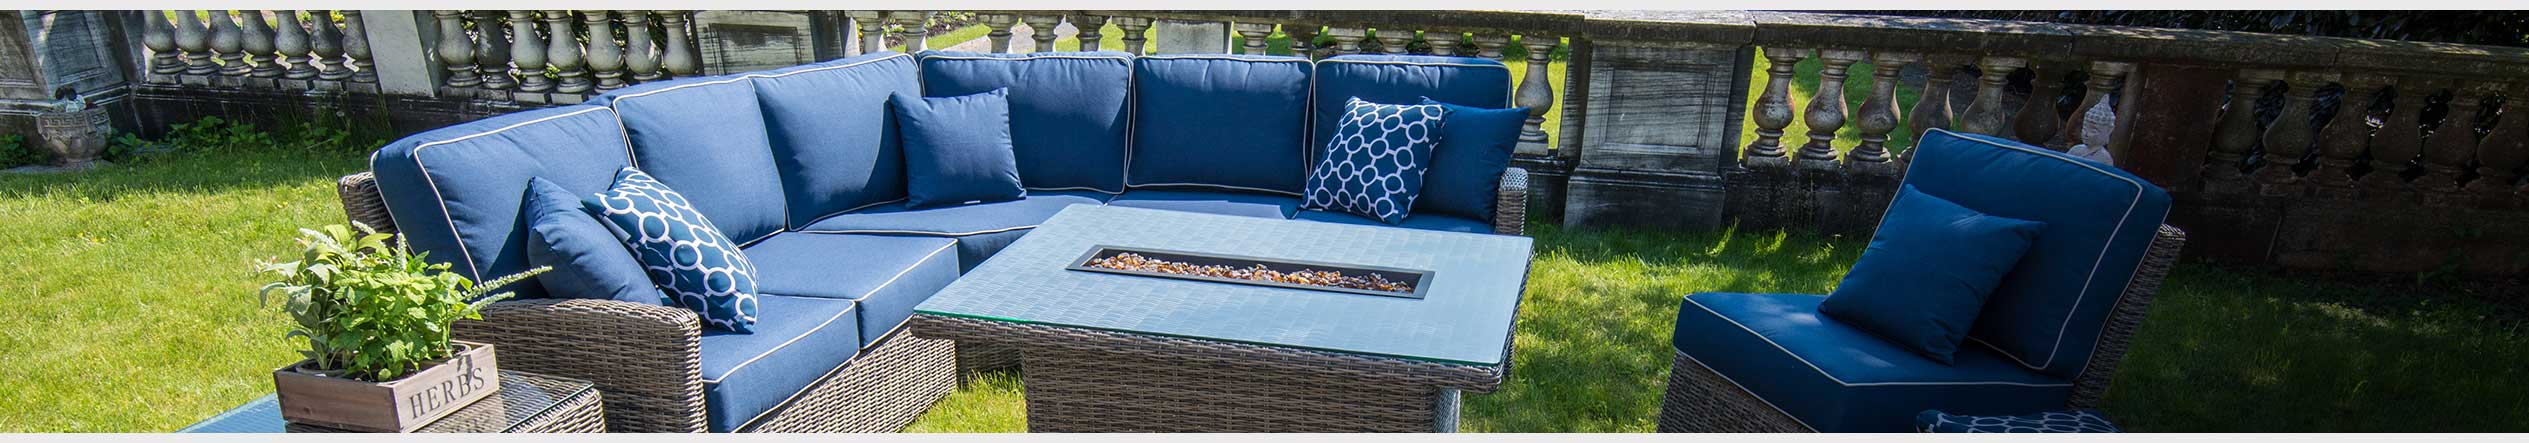 Outdoor Sofas & Sectionals